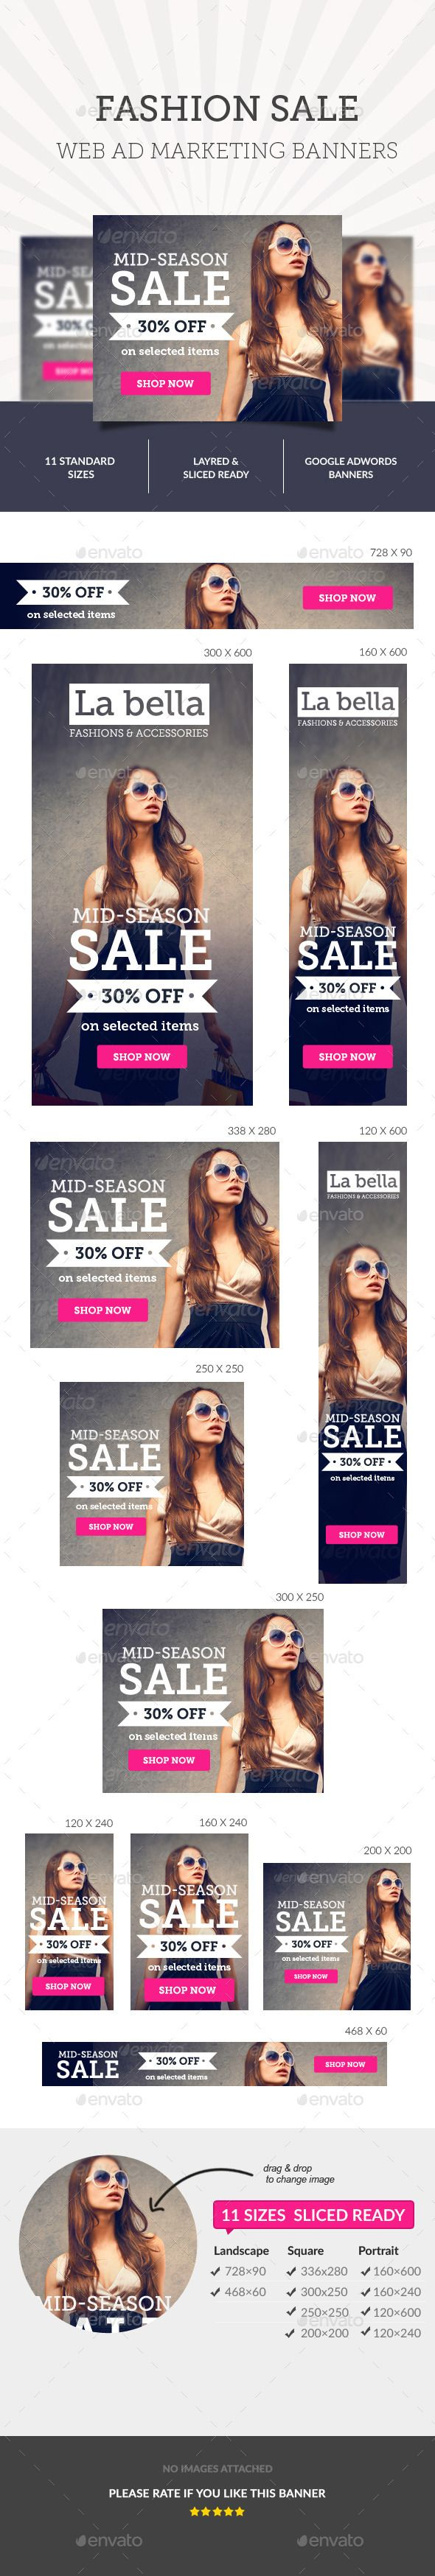 Fashion Sale Ad Banners | Download: http://graphicriver.net/item/fashion-sale-ad-banners-/10274467?ref=ksioks